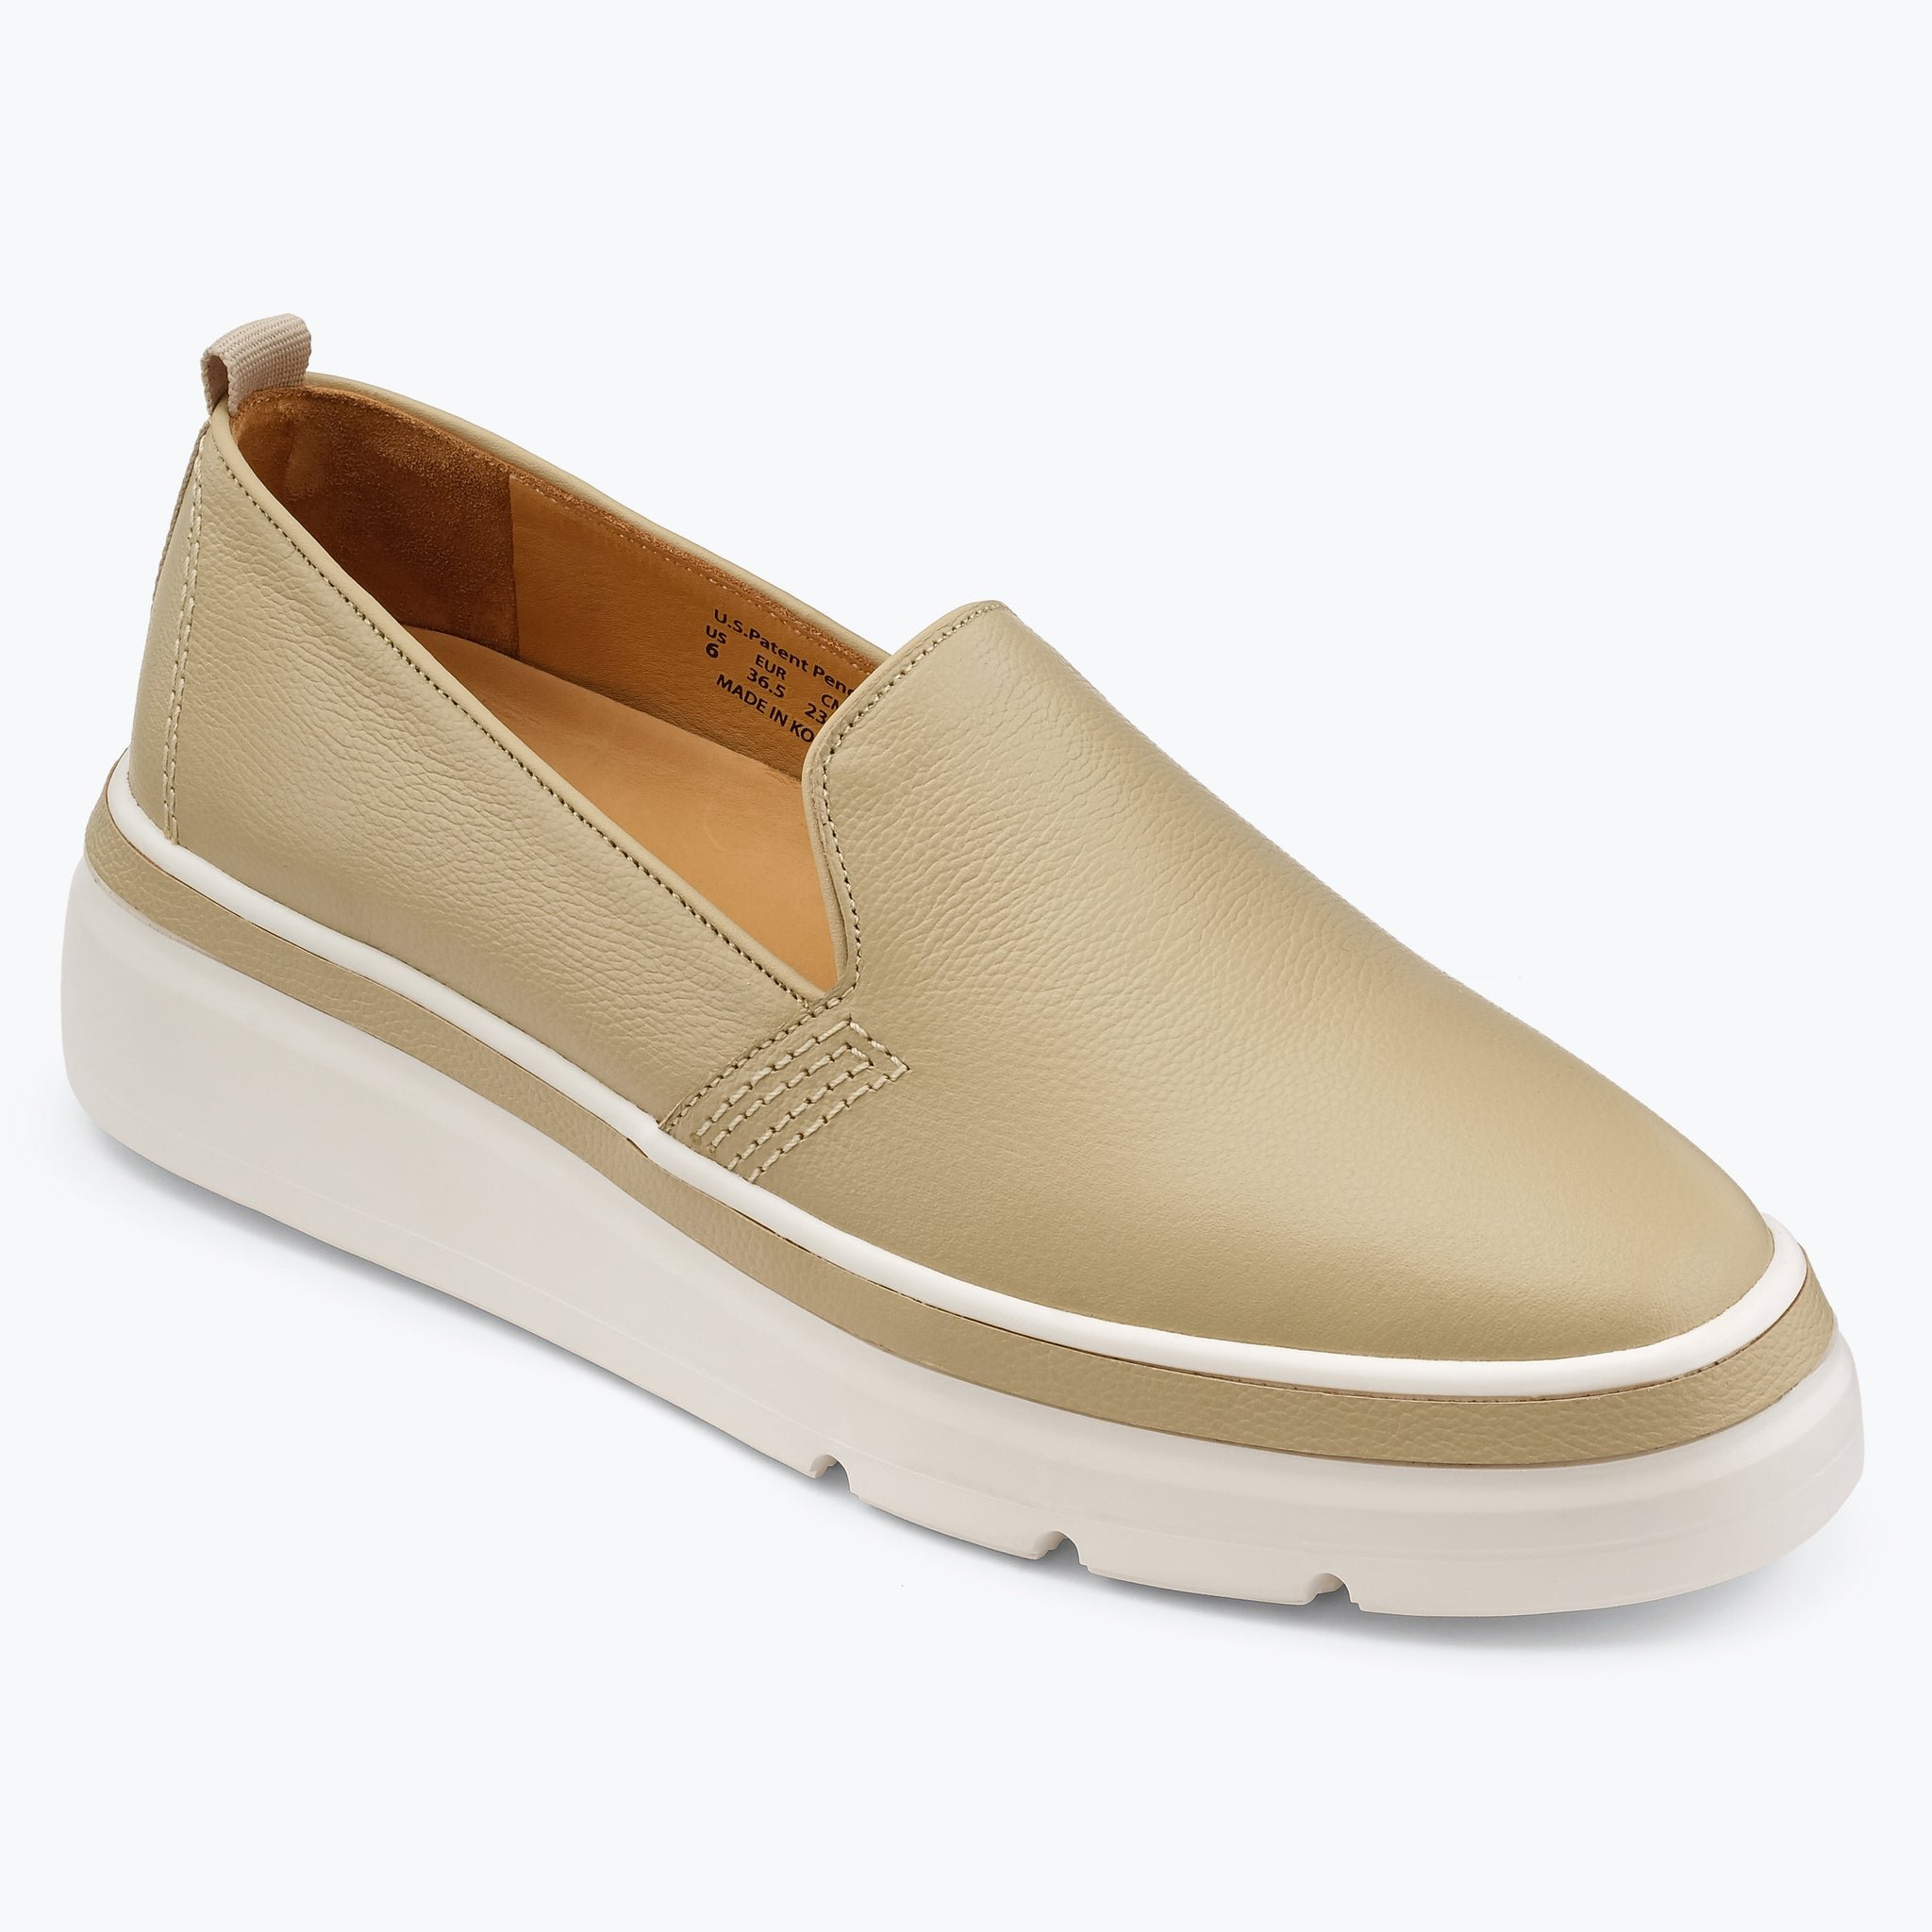 Sutton Leather Sneaker - Oatmeal